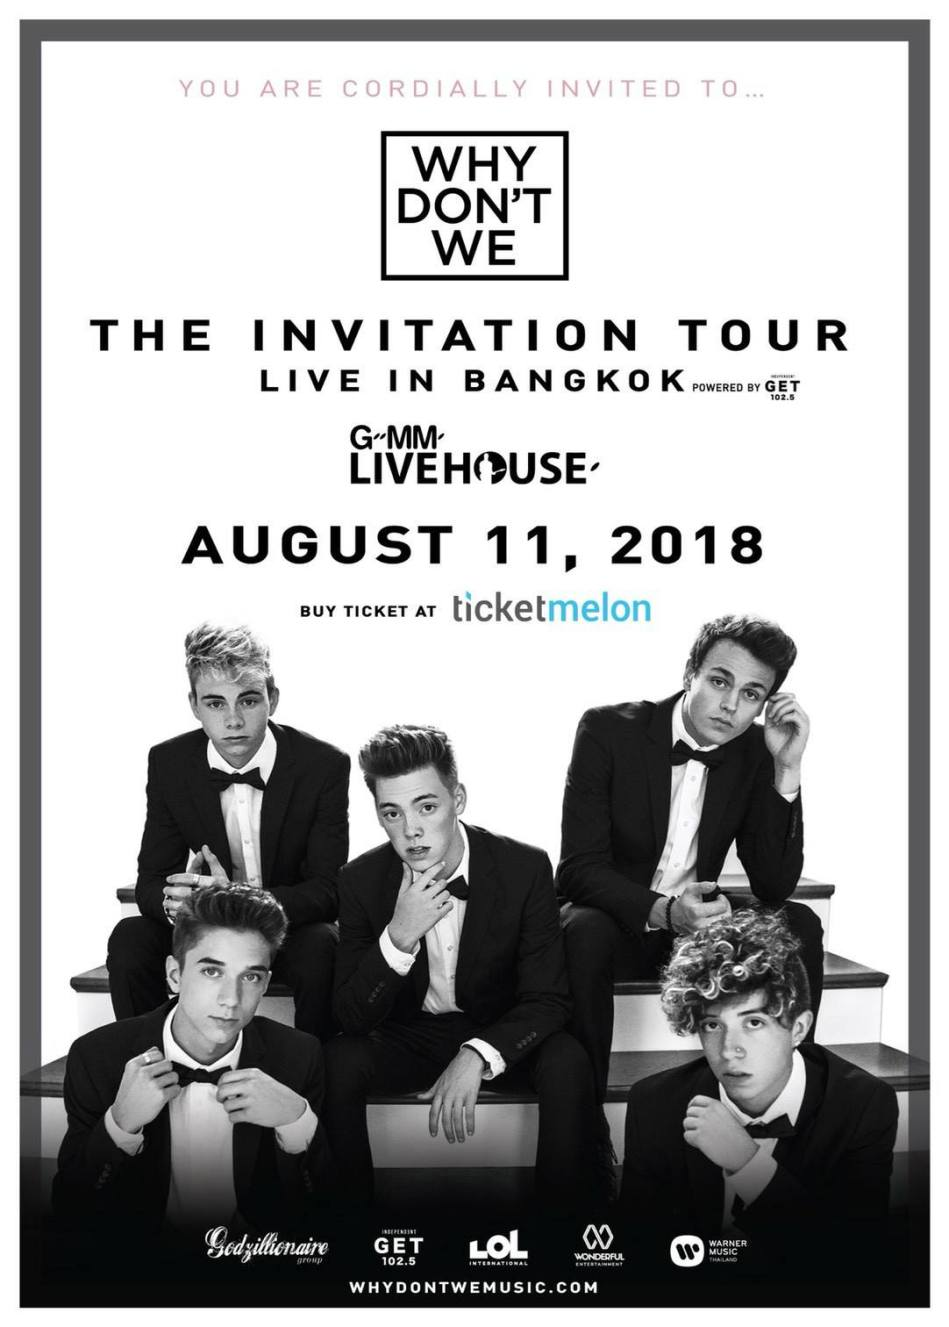 Why Don't We The Invitation Tour Live in Bangkok 2018